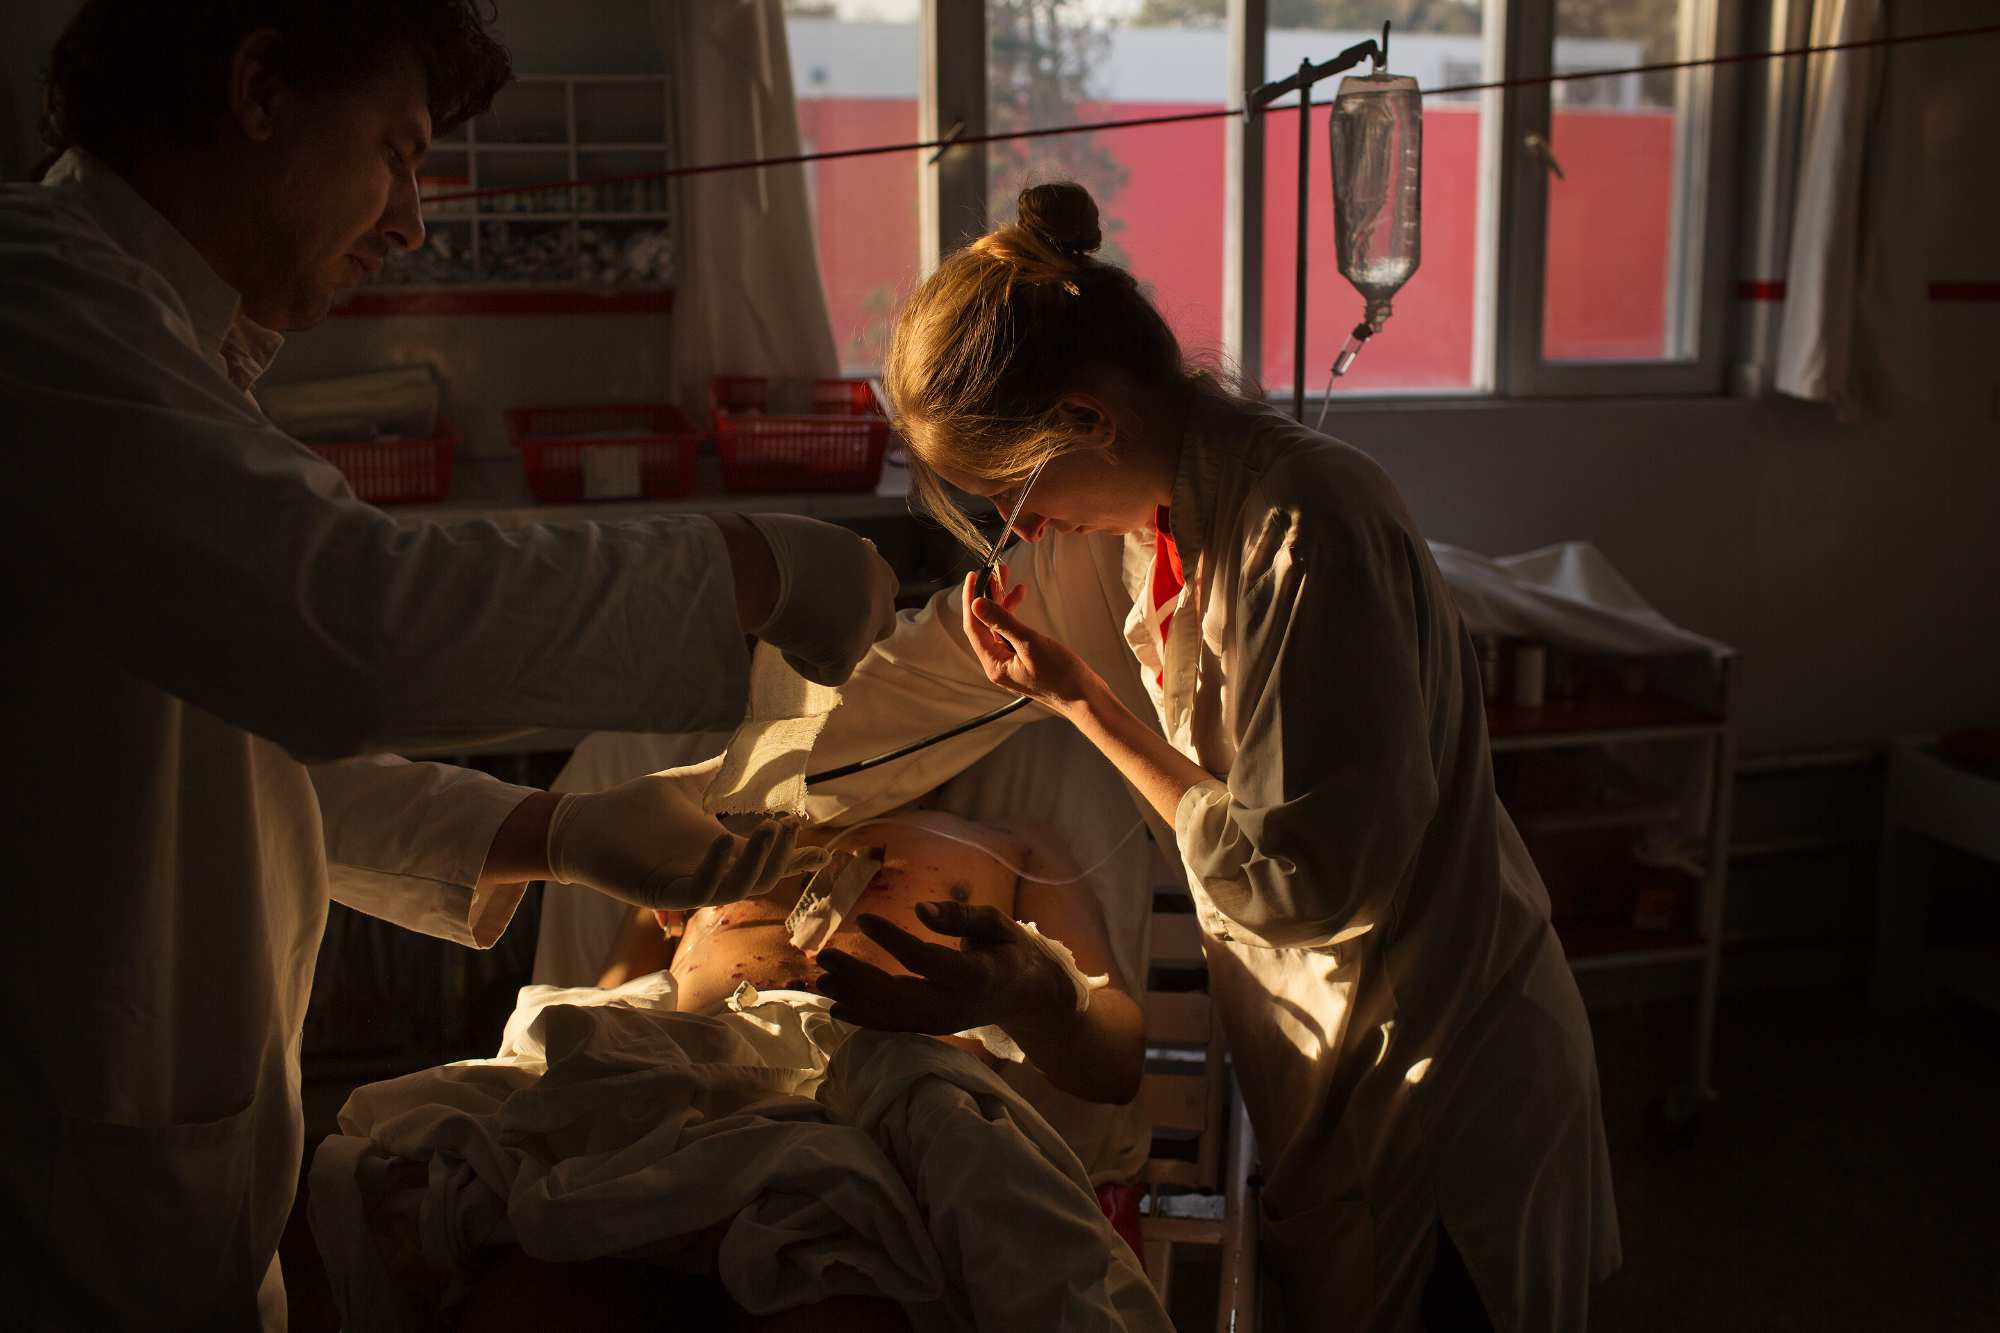 Nurse Claire Hayzelden, center, examines Jamat Gul, 28, who suffered shrapnel injuries in an IED blast, in the emergency room at Emergency Surgical Center.